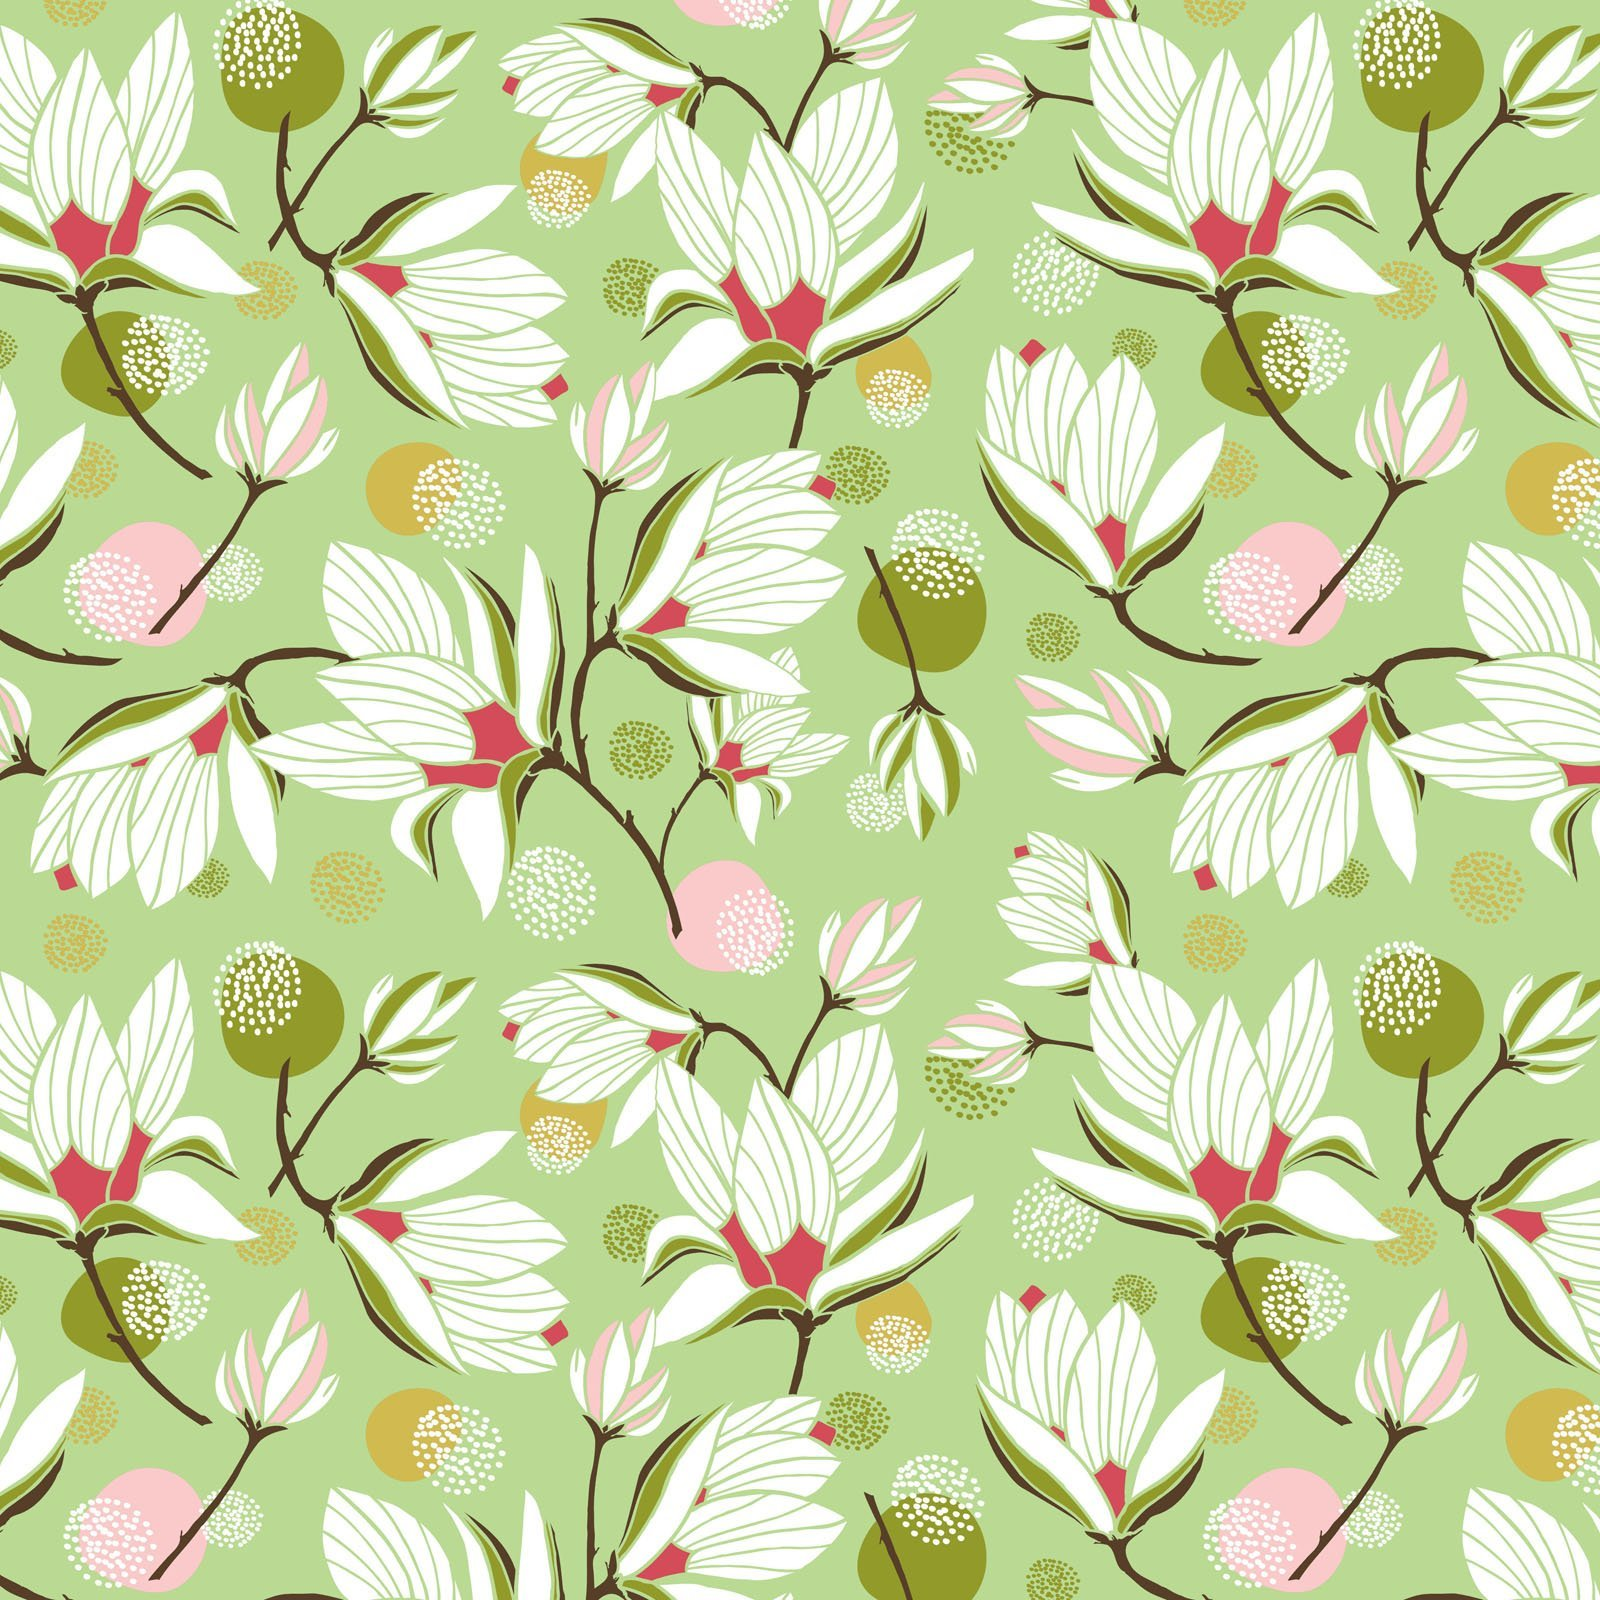 SOUH-4422 G - SOUTHERN HOSPITALITY BY HANG TIGHT STUDIO MAGNOLIA BLOSSOM GREEN - AVAILABLE TO ORDER